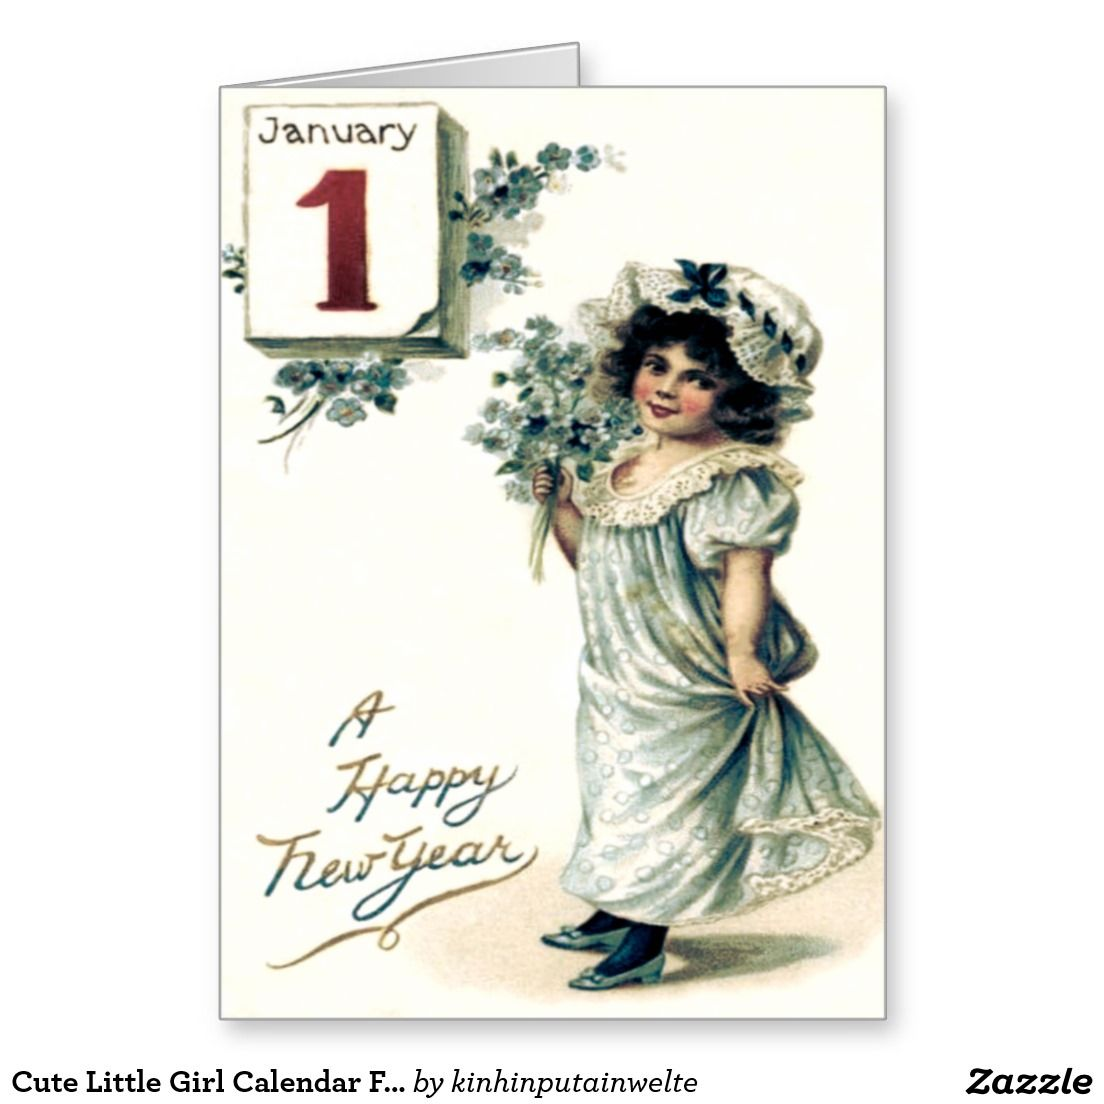 Cute little girl calendar forget me nots card girls cute little girl calendar forget me nots card kristyandbryce Images